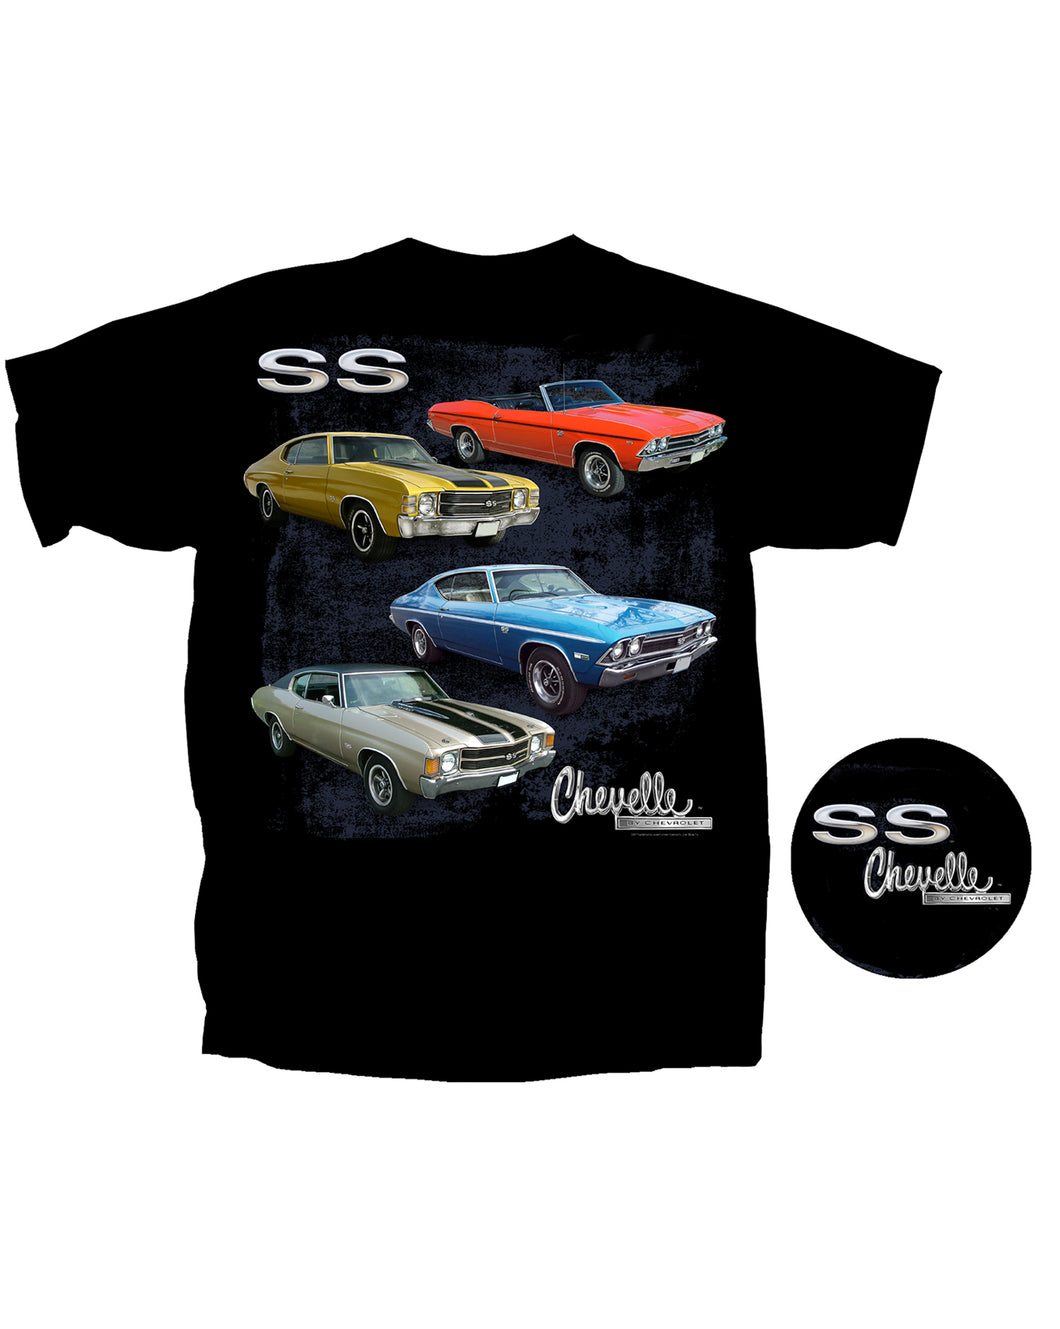 Chevy Chevelle SS Chevelle T-Shirt